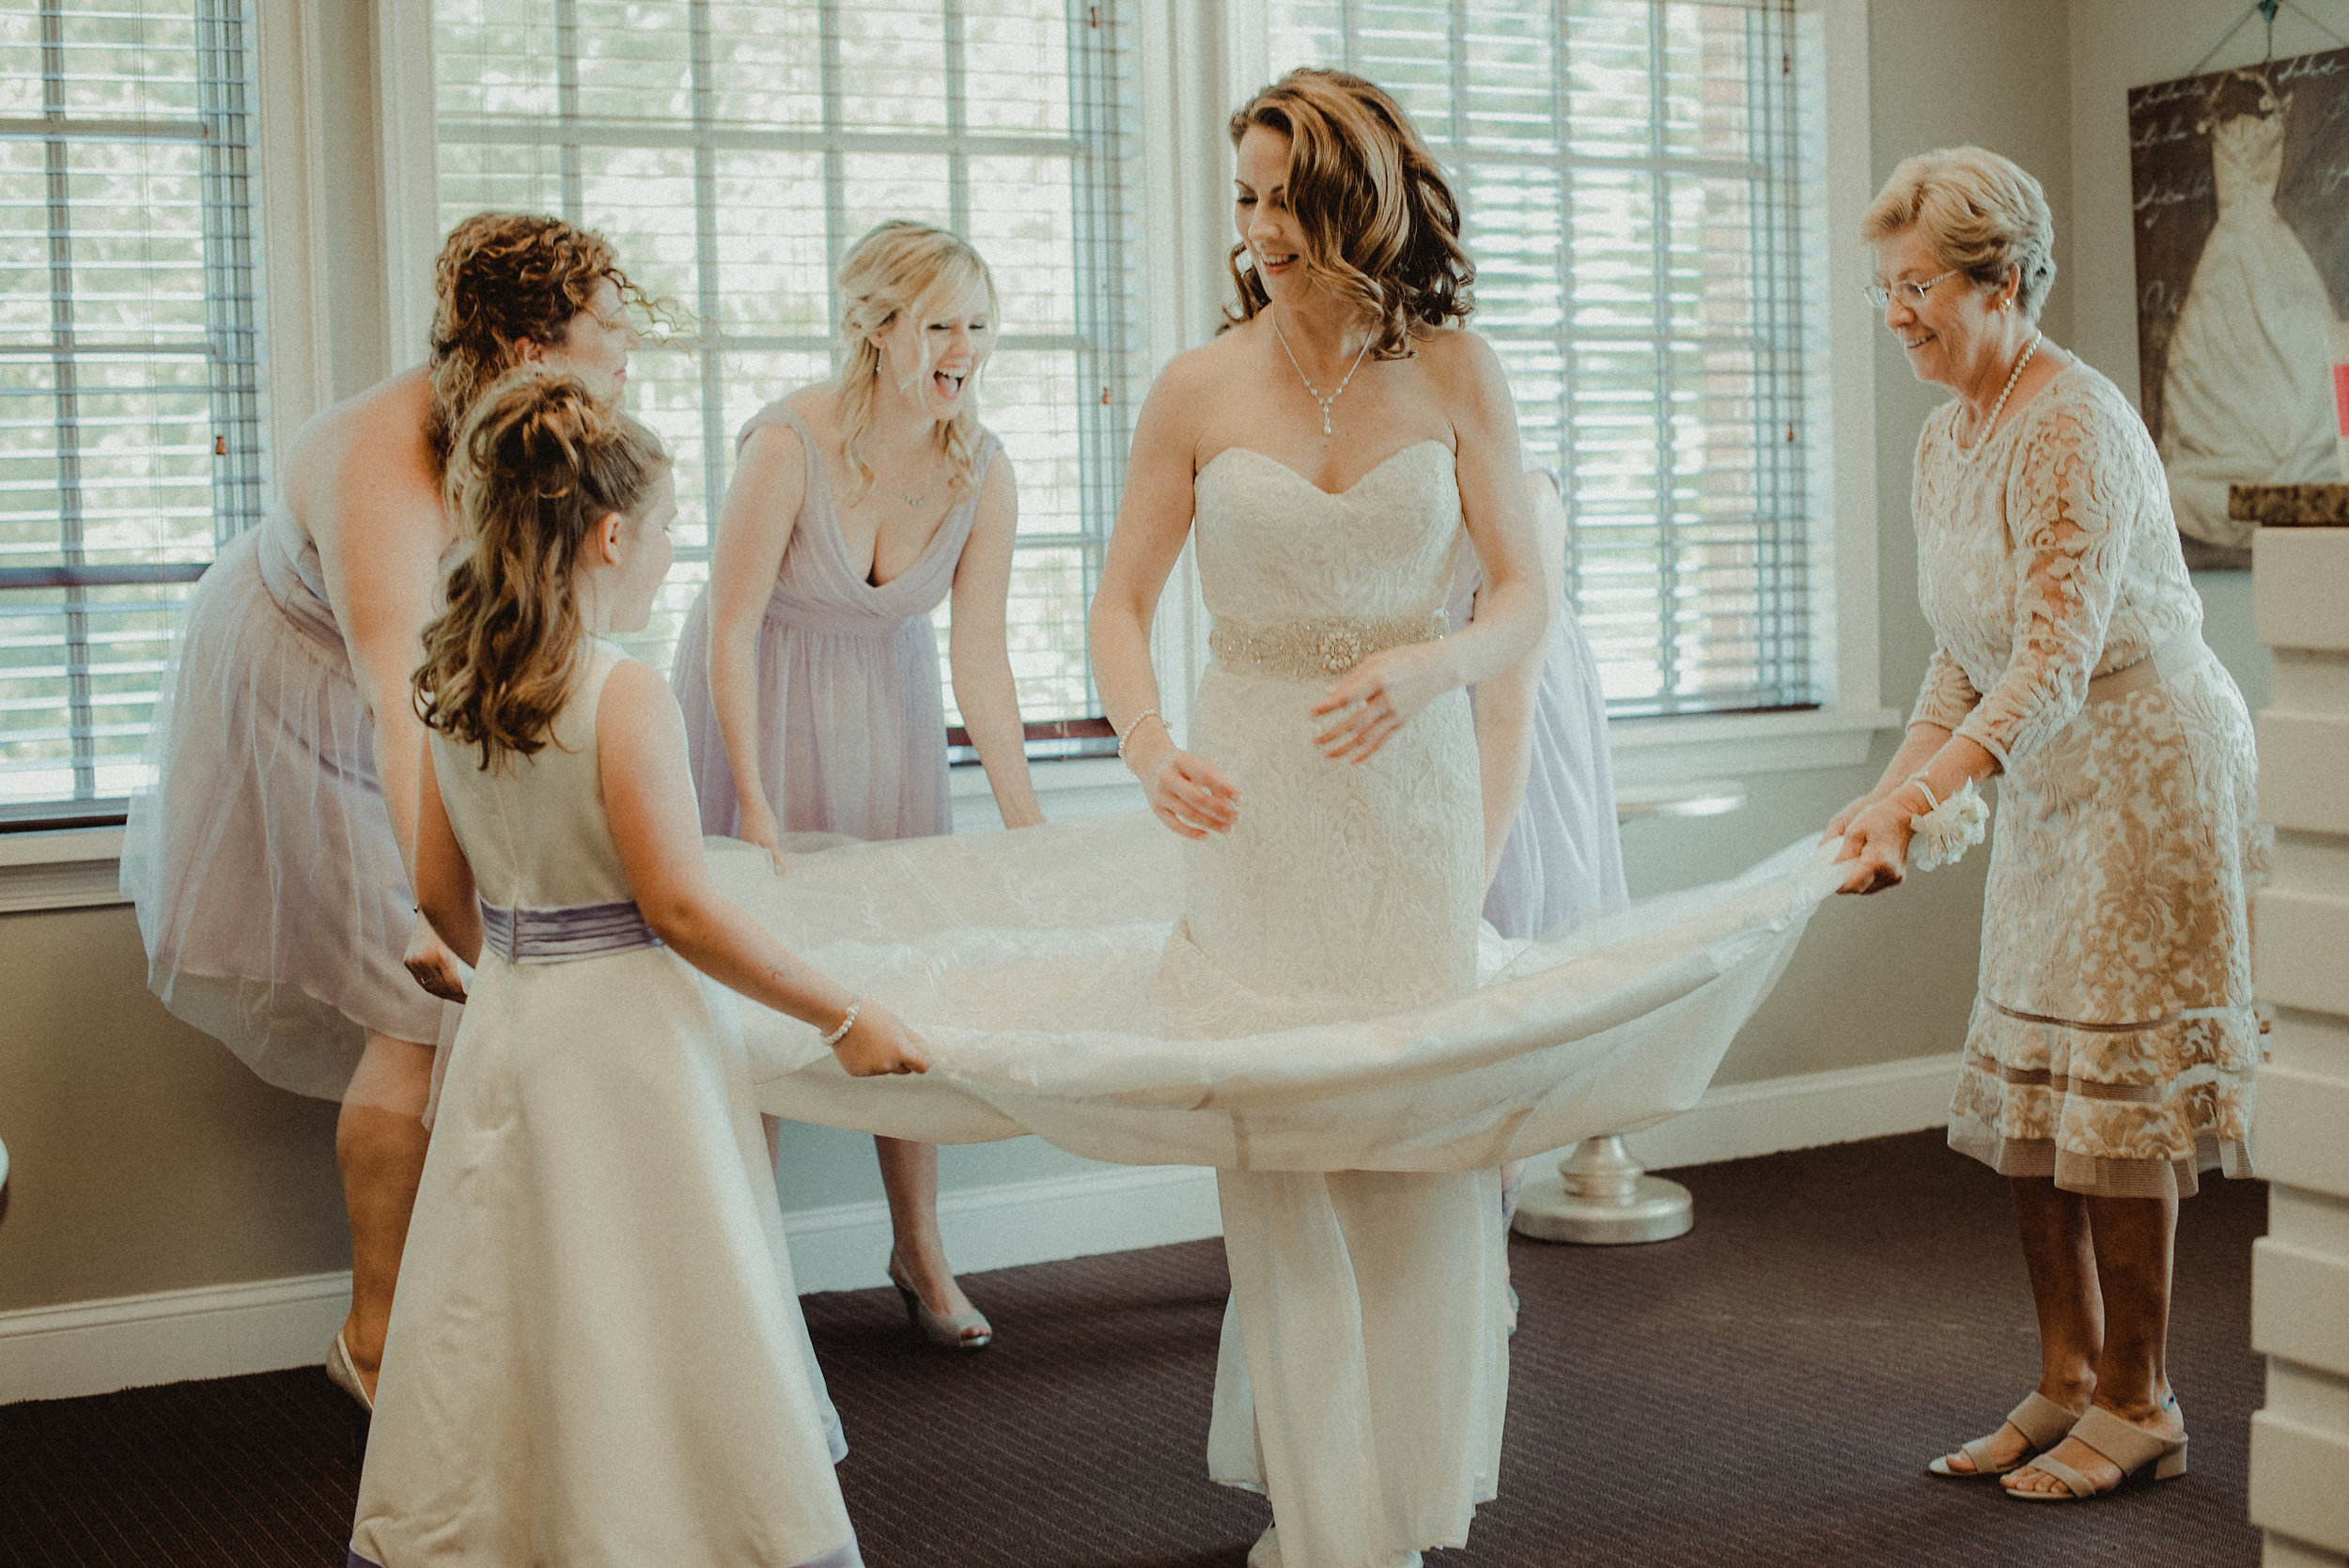 Bridal party helping bride dress